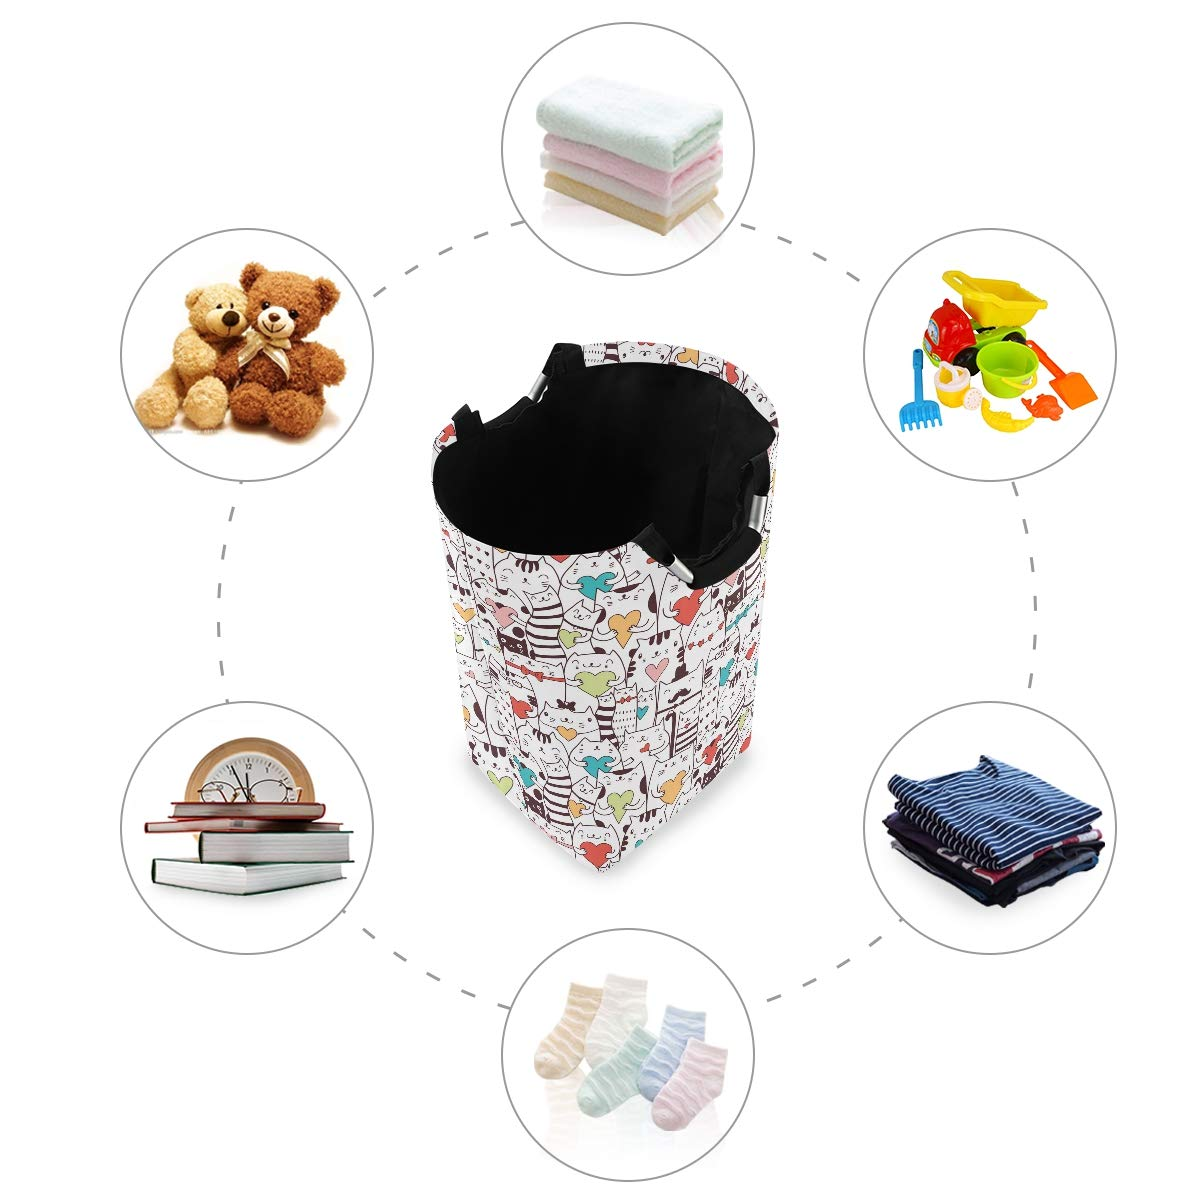 OREZI Dog and Horse Laudry Hamper,Waterproof and Foldable Laundry Bag for Storage Dirty Clothes Toys in Bedroom,Bathroom Dorm Room